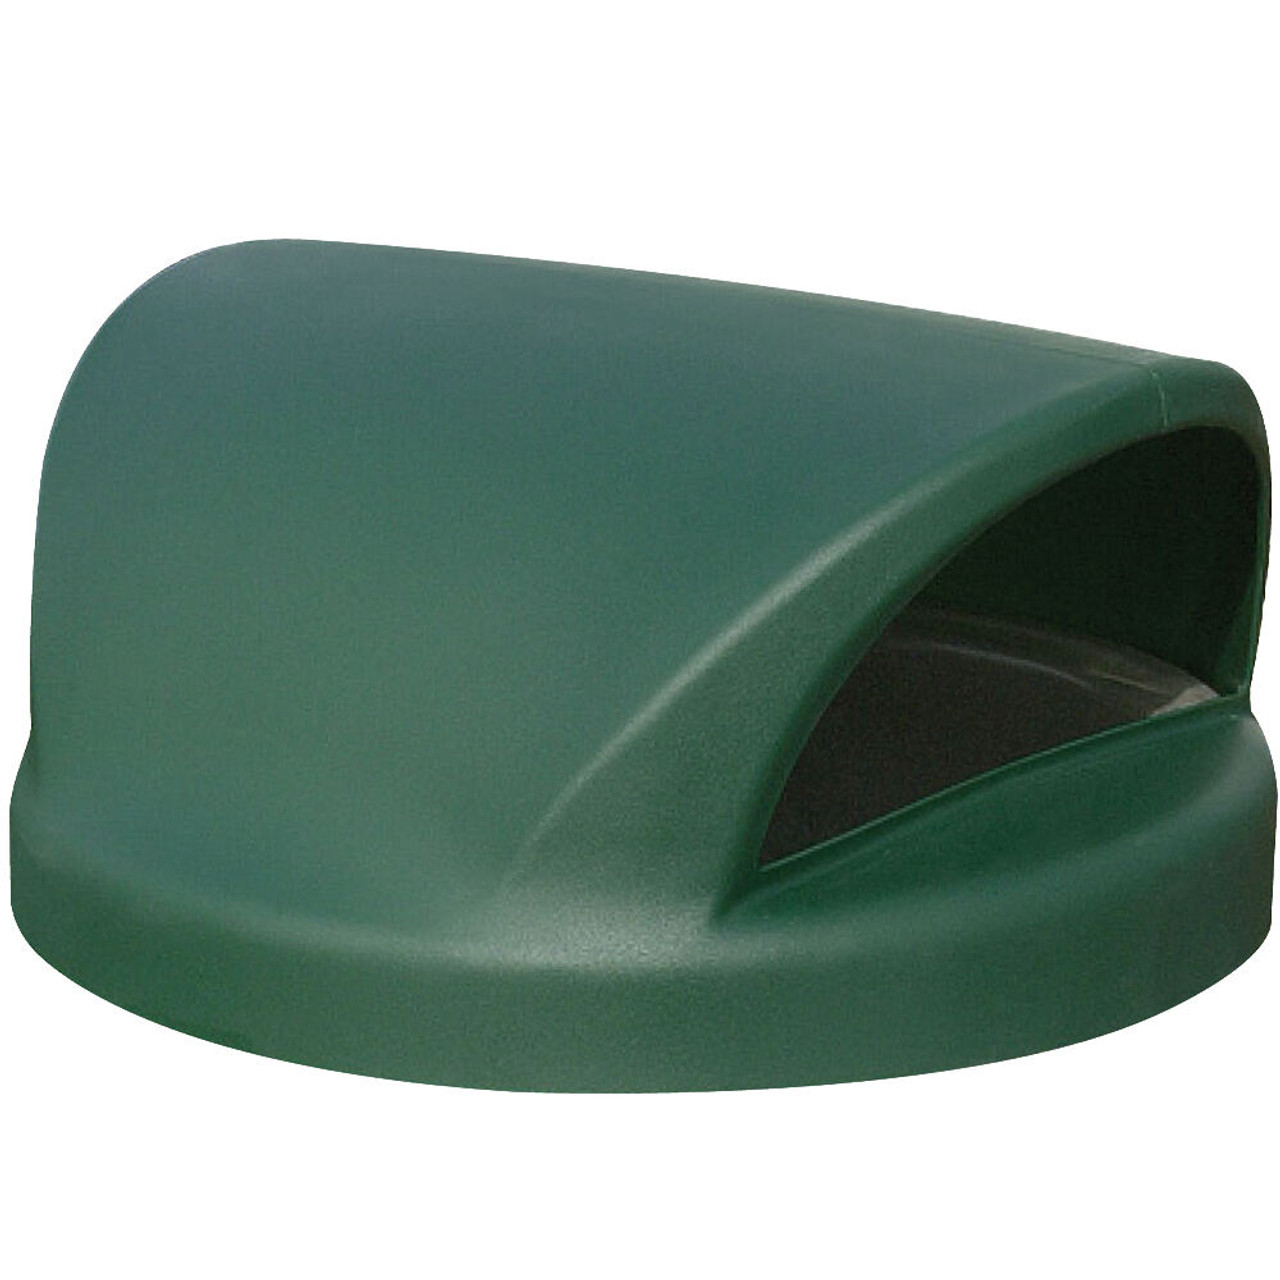 2 Way Round Plastic Lid for Metal and Plastic 55 Gallon Drums